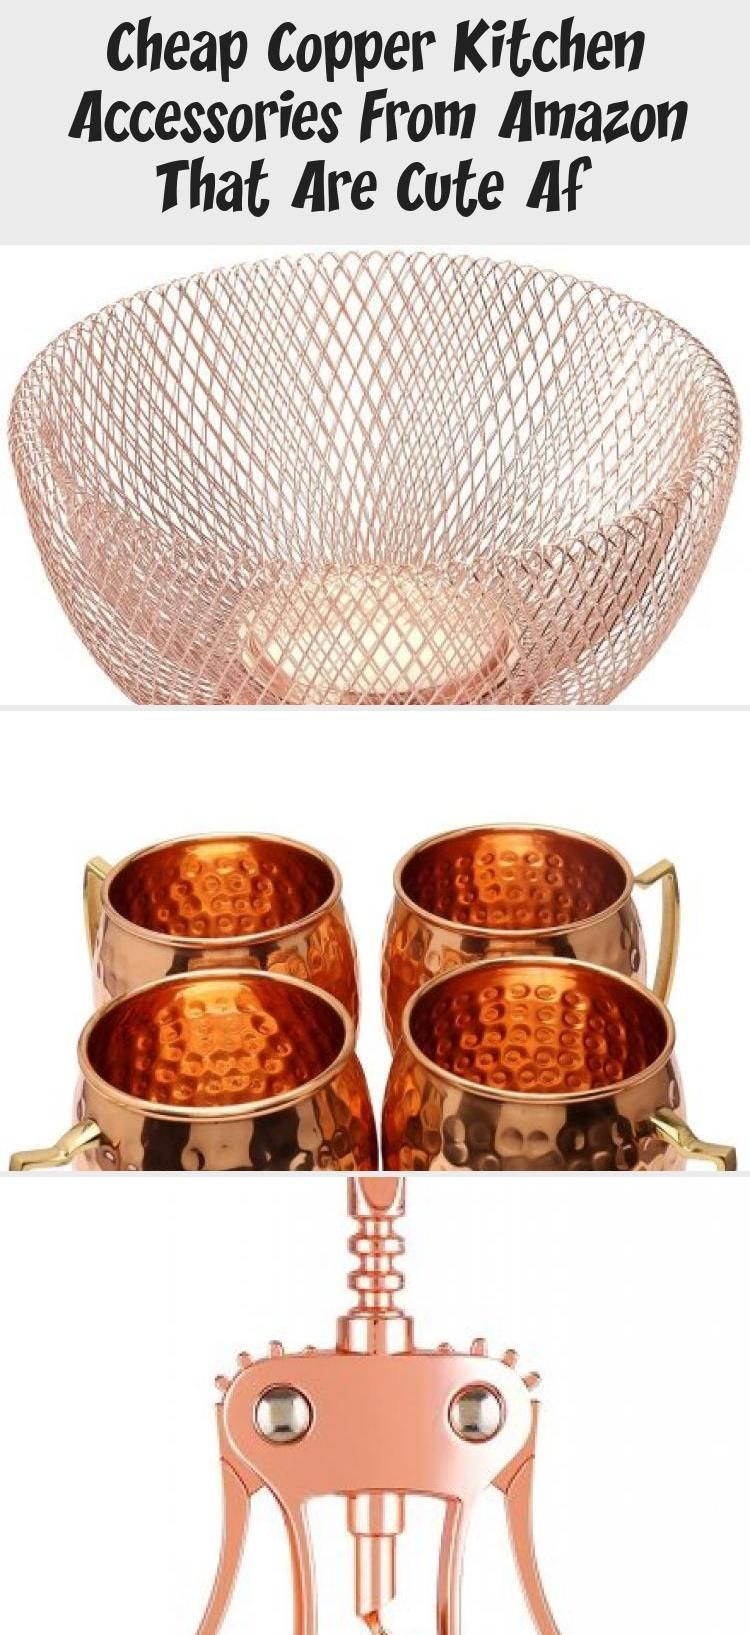 Cheap Copper Kitchen Accessories From Amazon That Are Cute Af #copperkitchenaccessories These copper kitchen accessories add a diversity in material against this kitchen shelving and back splash tile. #copperkitchen #kitchenaccessories #copperkitchenaccessories #copperpans #copperkitchenware #kitchenaccessoriesDesign #Creamkitchenaccessories #kitchenaccessoriesFabric #Coolkitchenaccessories #Marblekitchenaccessories #copperkitchenaccessories Cheap Copper Kitchen Accessories From Amazon That Are #copperkitchenaccessories